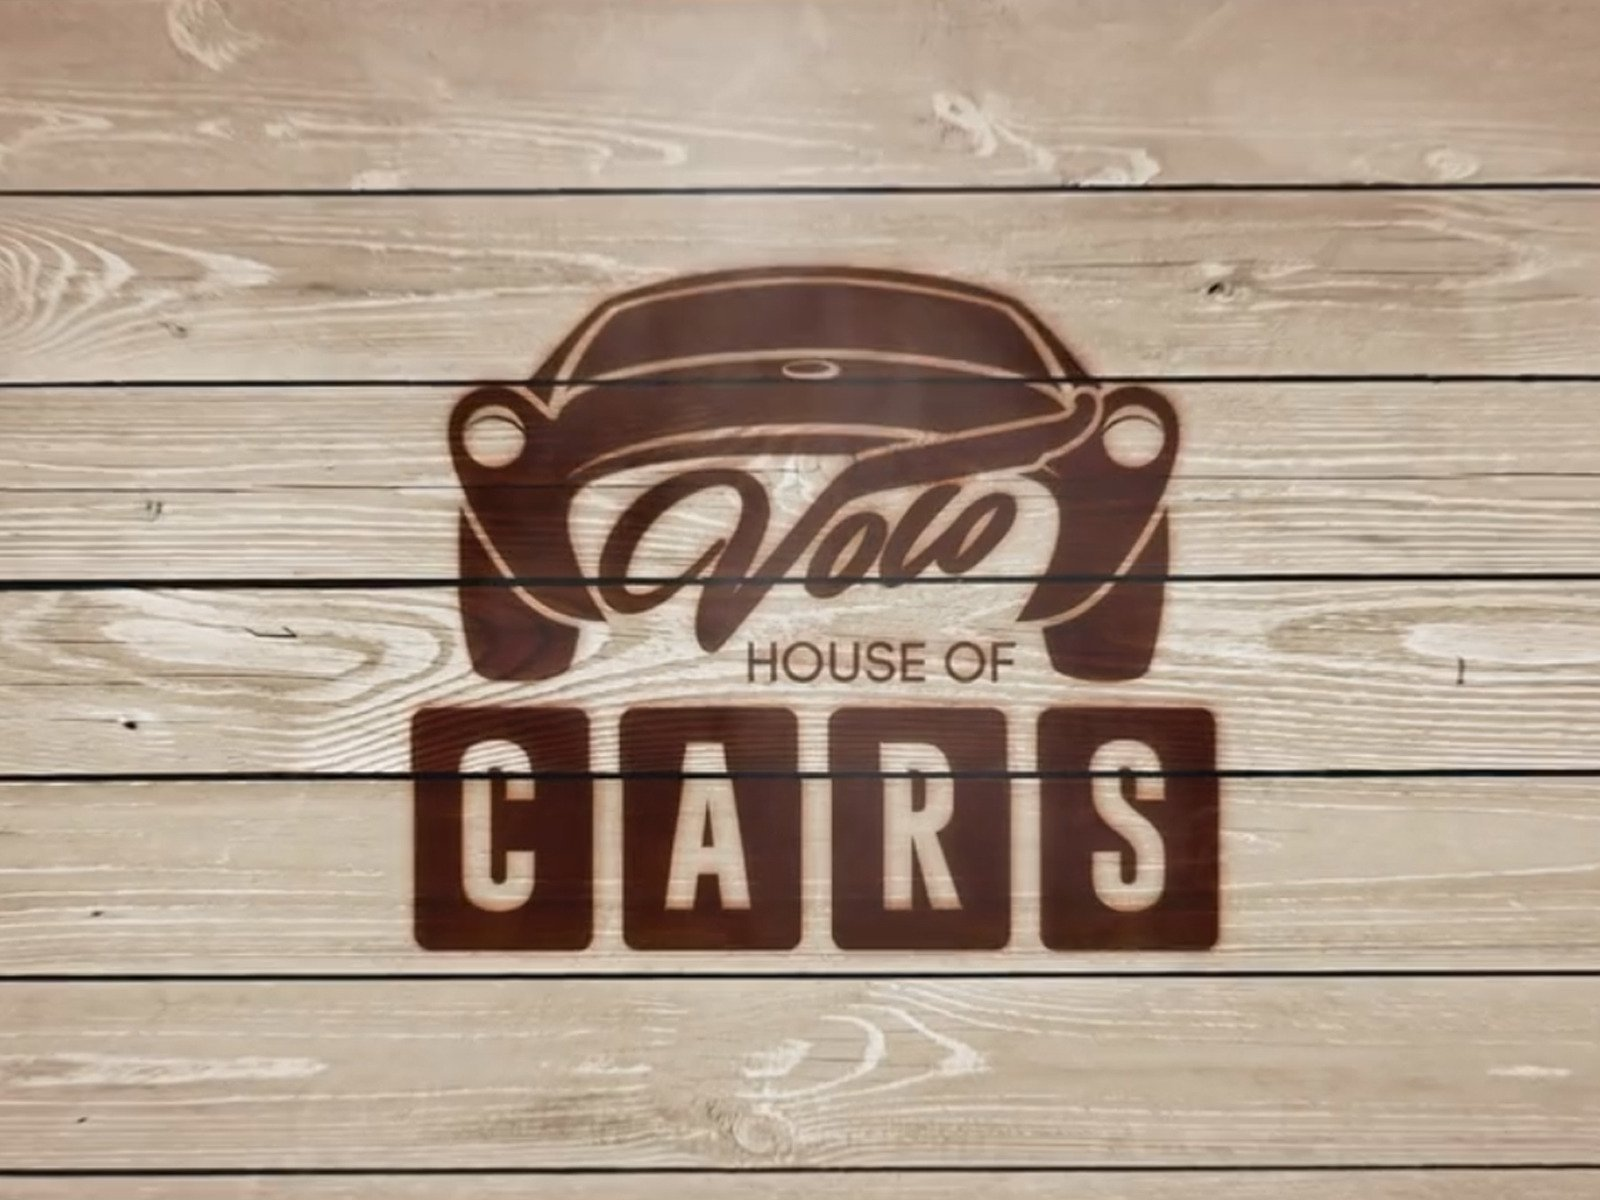 Volo: House of Cars - Season 1